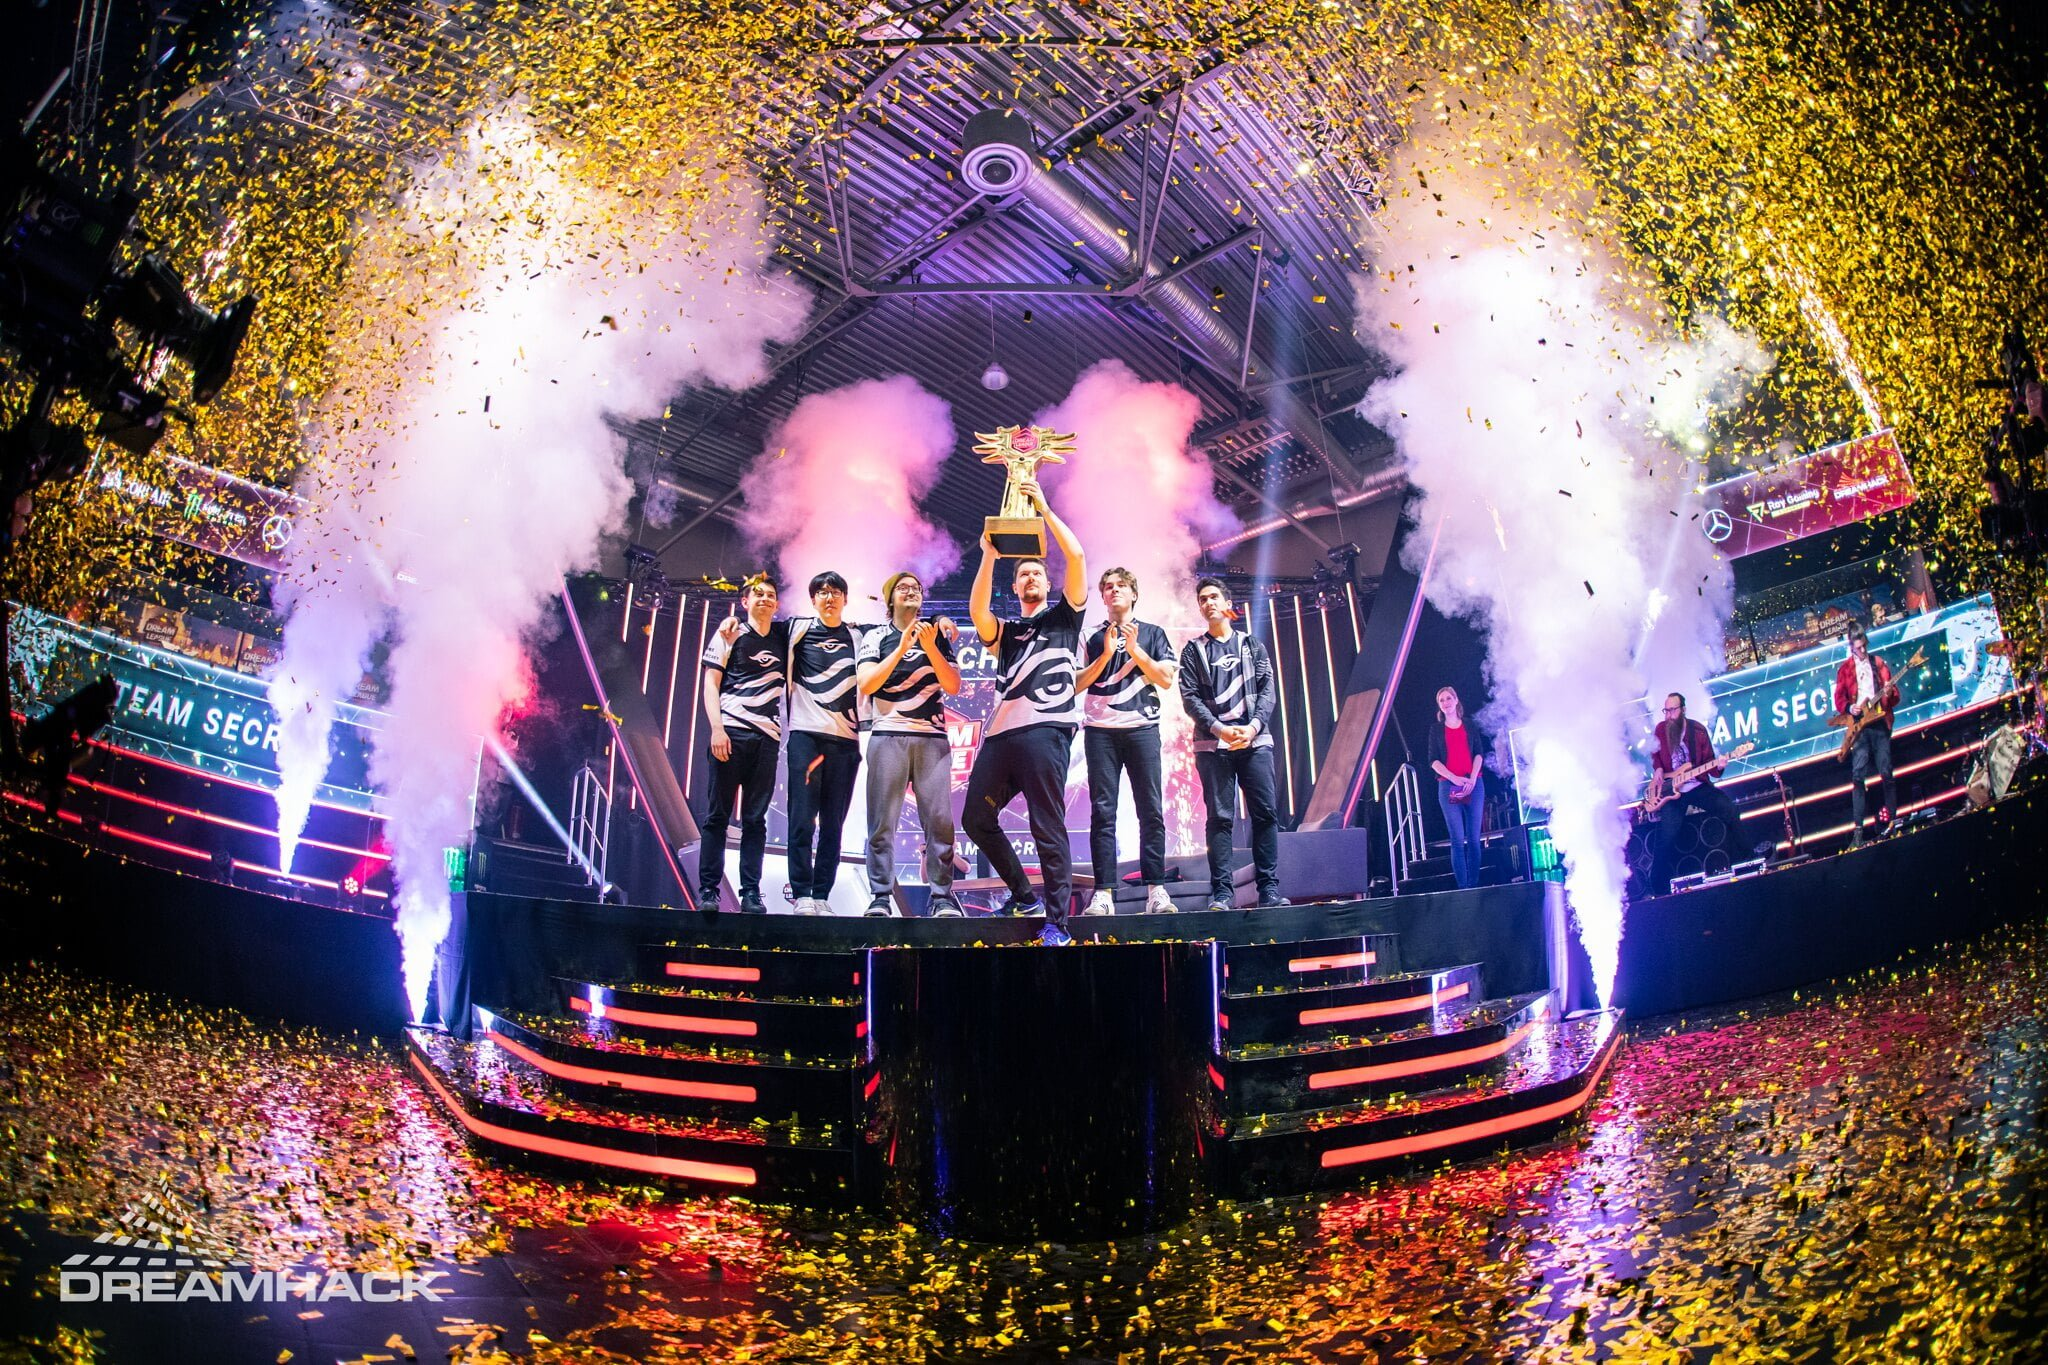 Team Secret levantando o troféu da DreamLeague 13